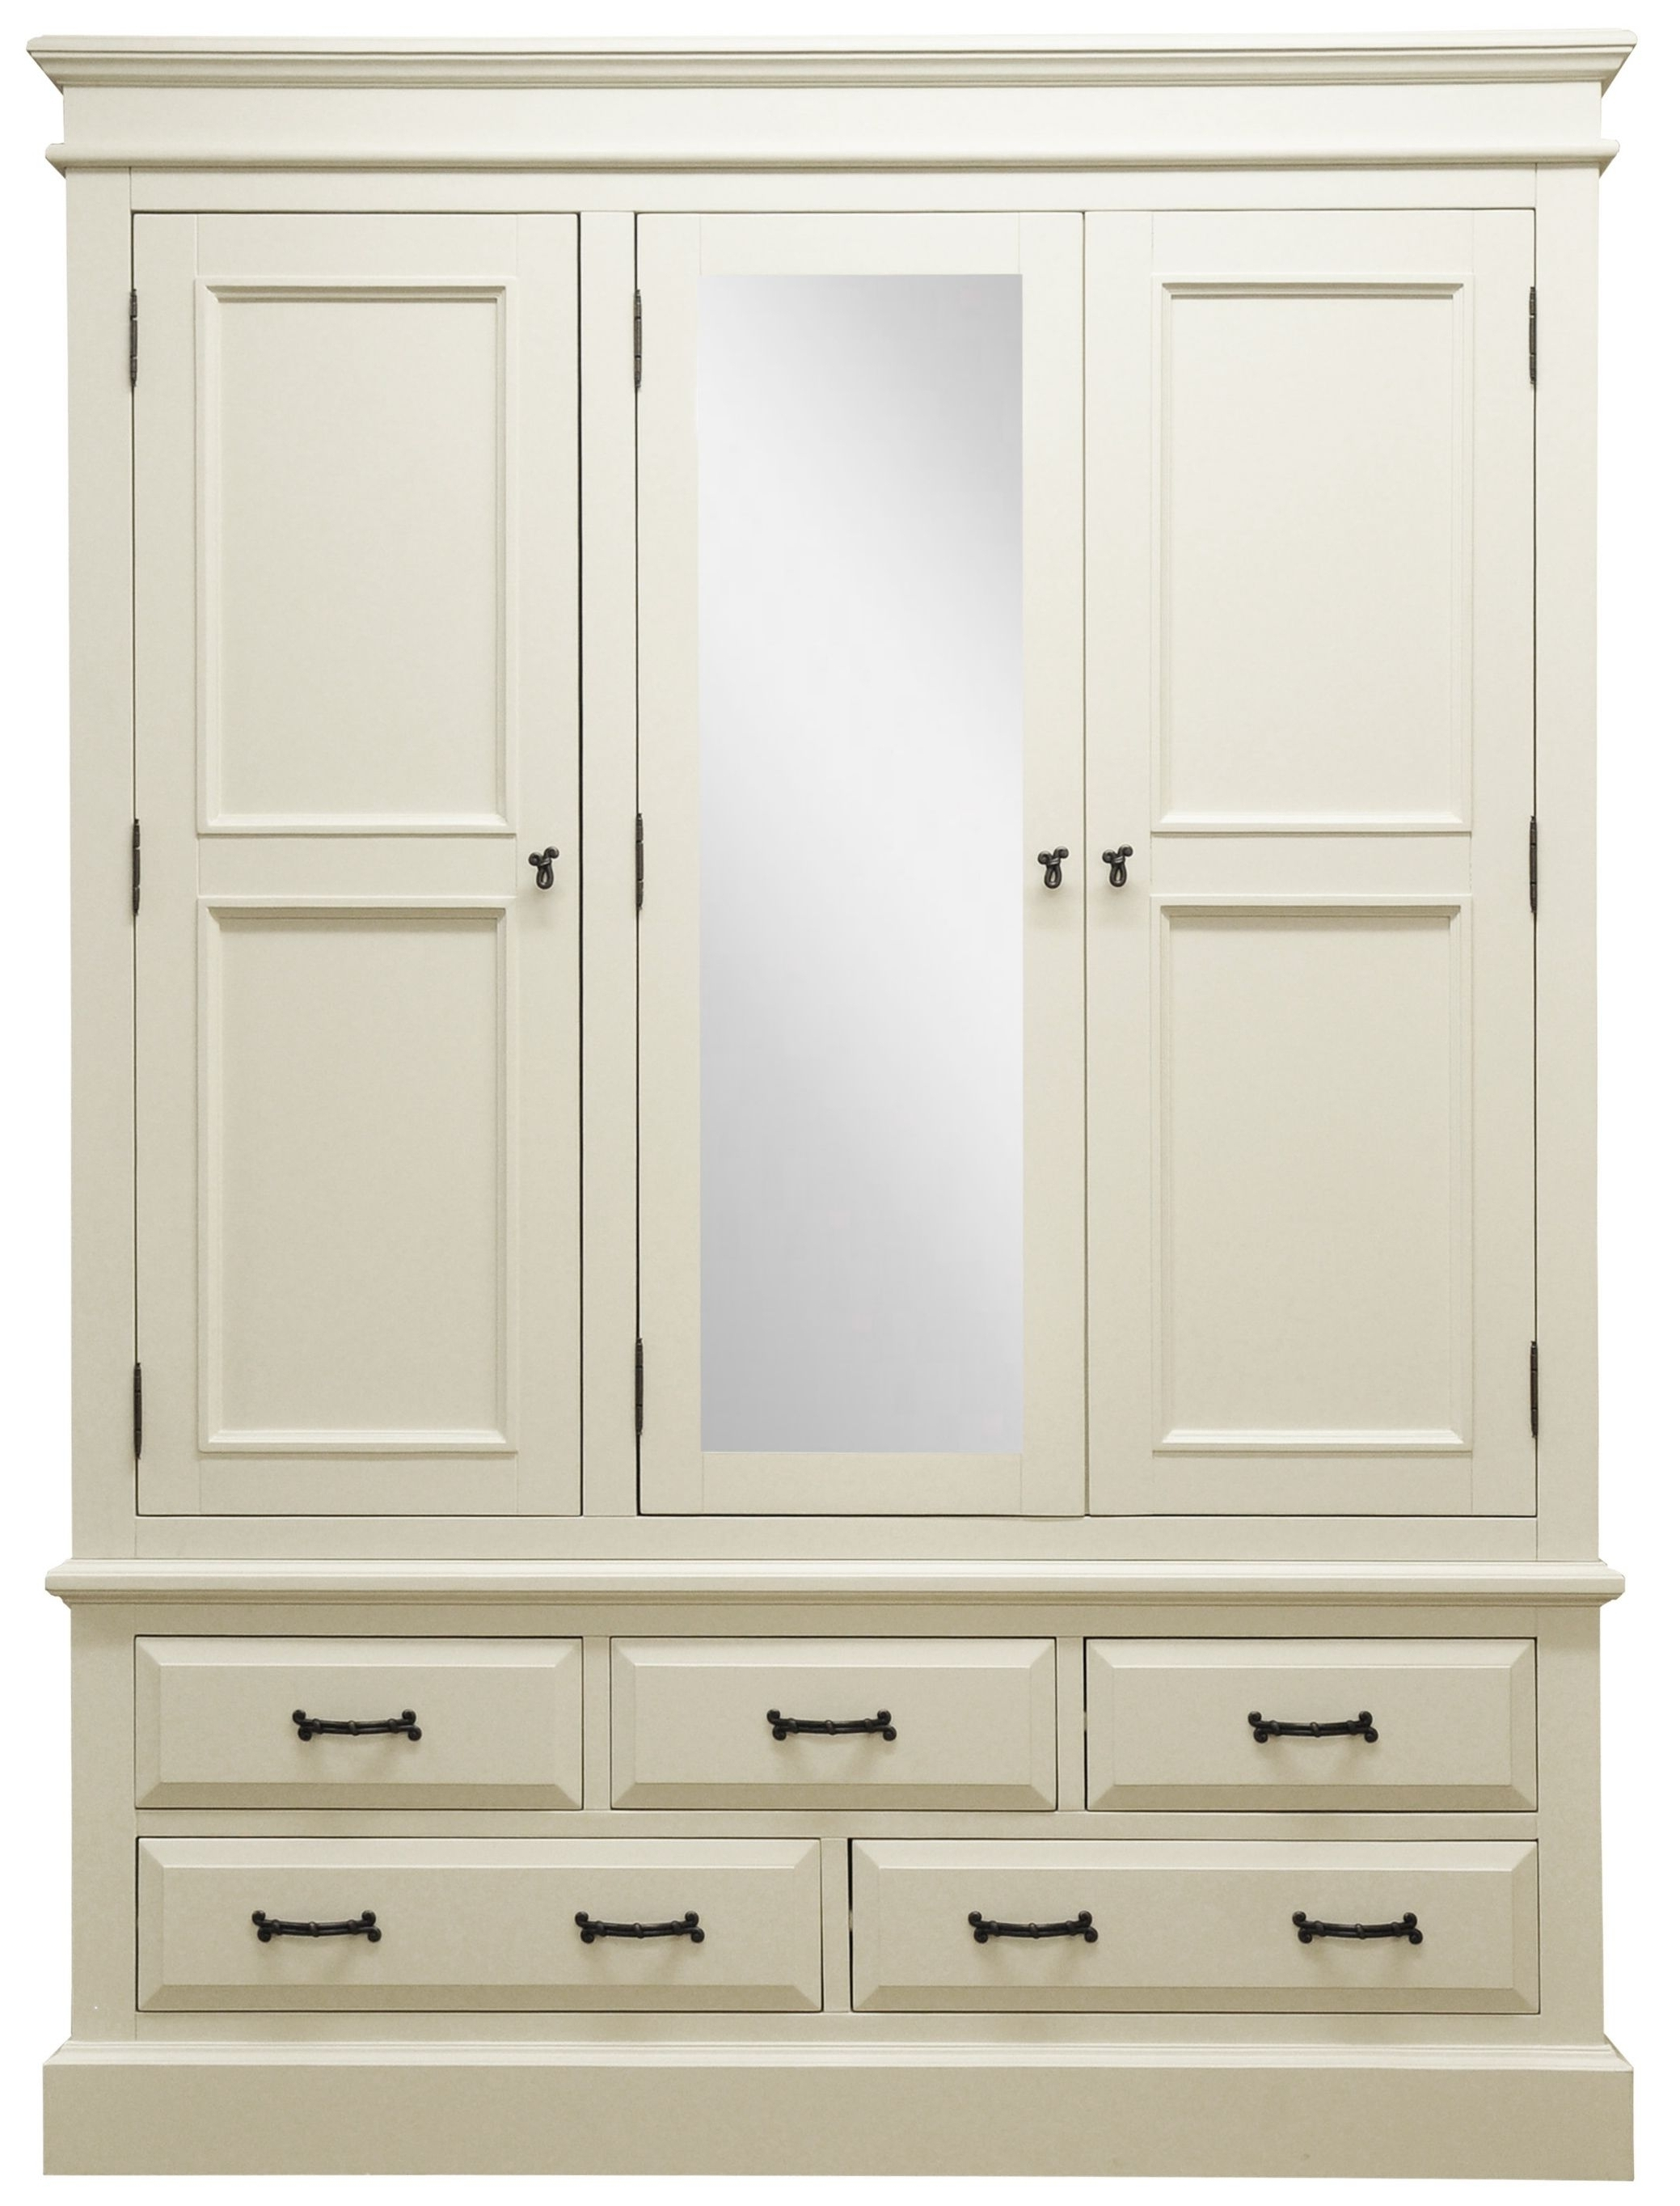 Cheap Wardrobes With Drawers With Regard To Recent Wardrobe With Drawers (View 9 of 15)